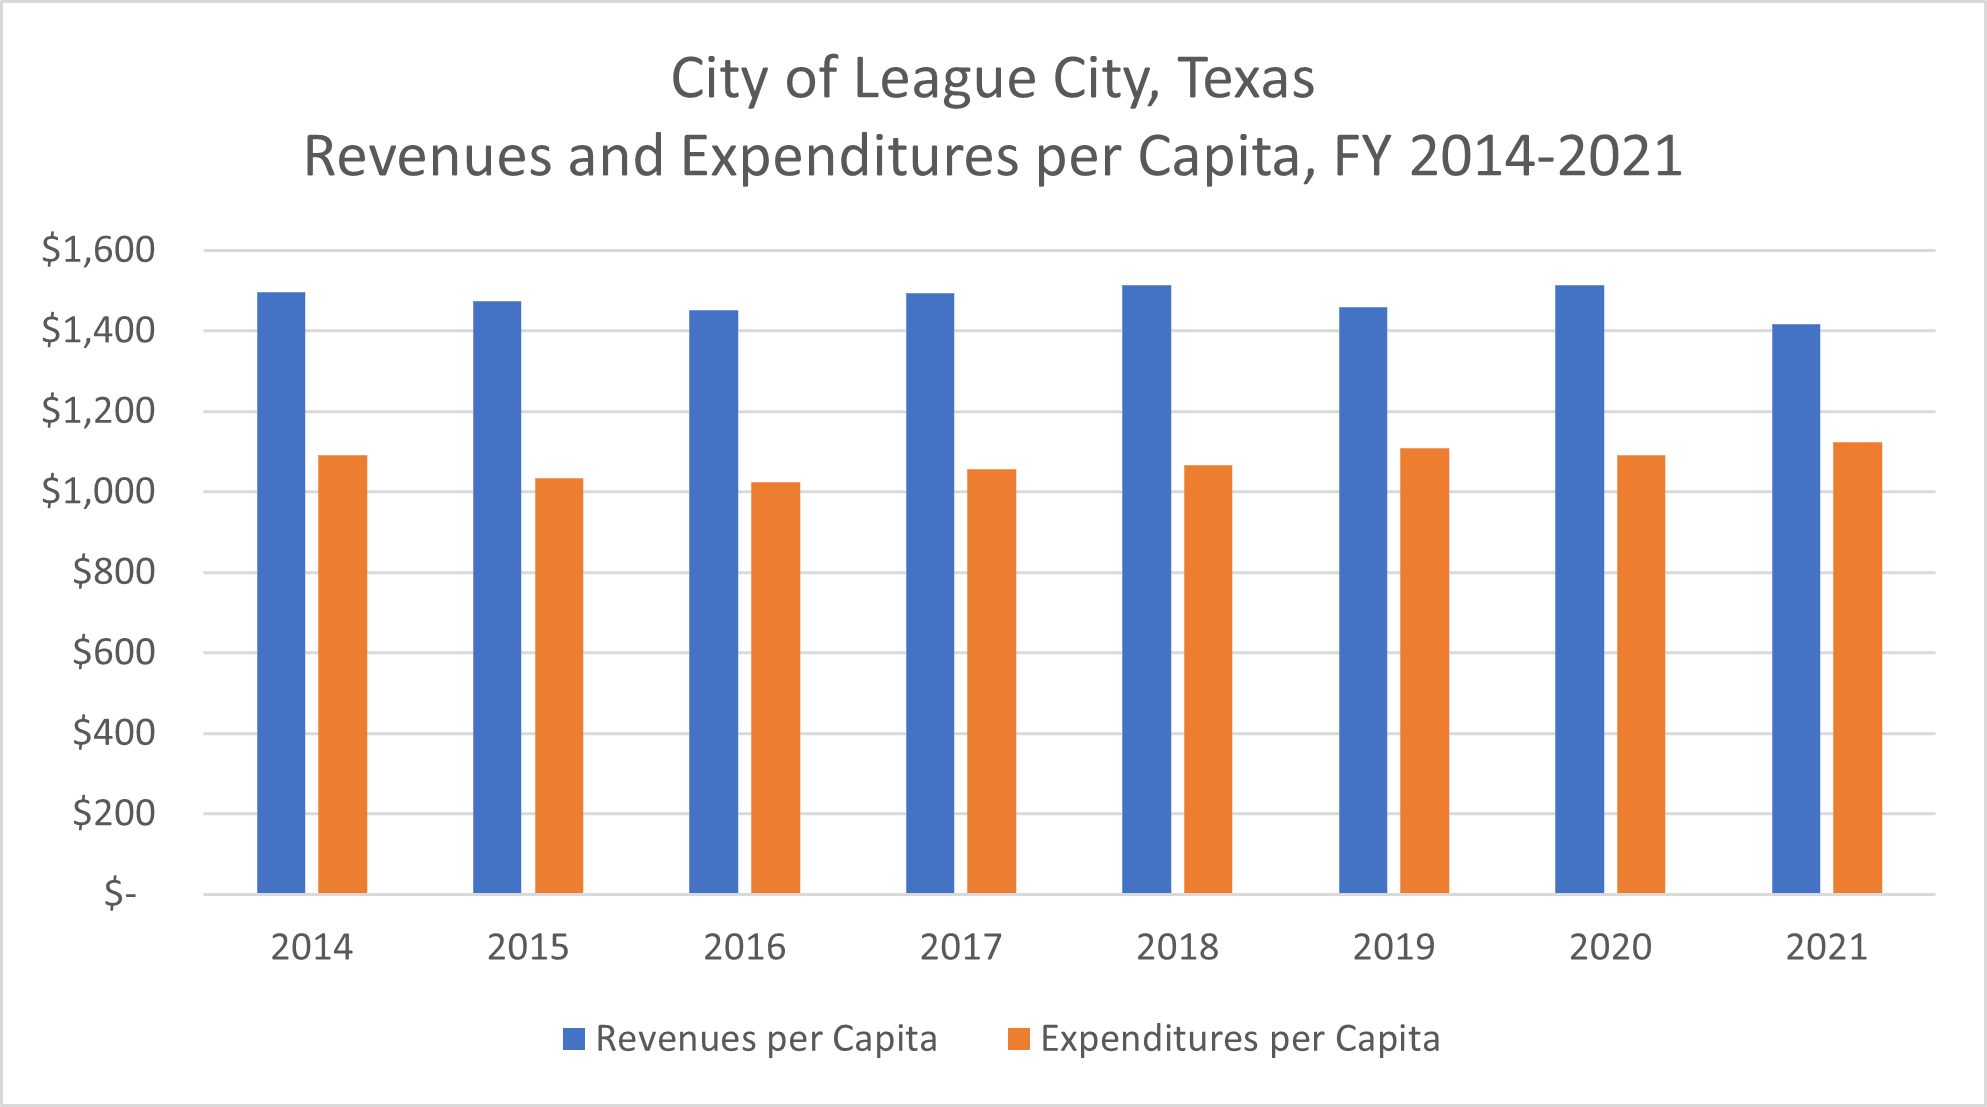 A graph showing the revenues and expenditures per capita for fiscal years 2011 to 2017.